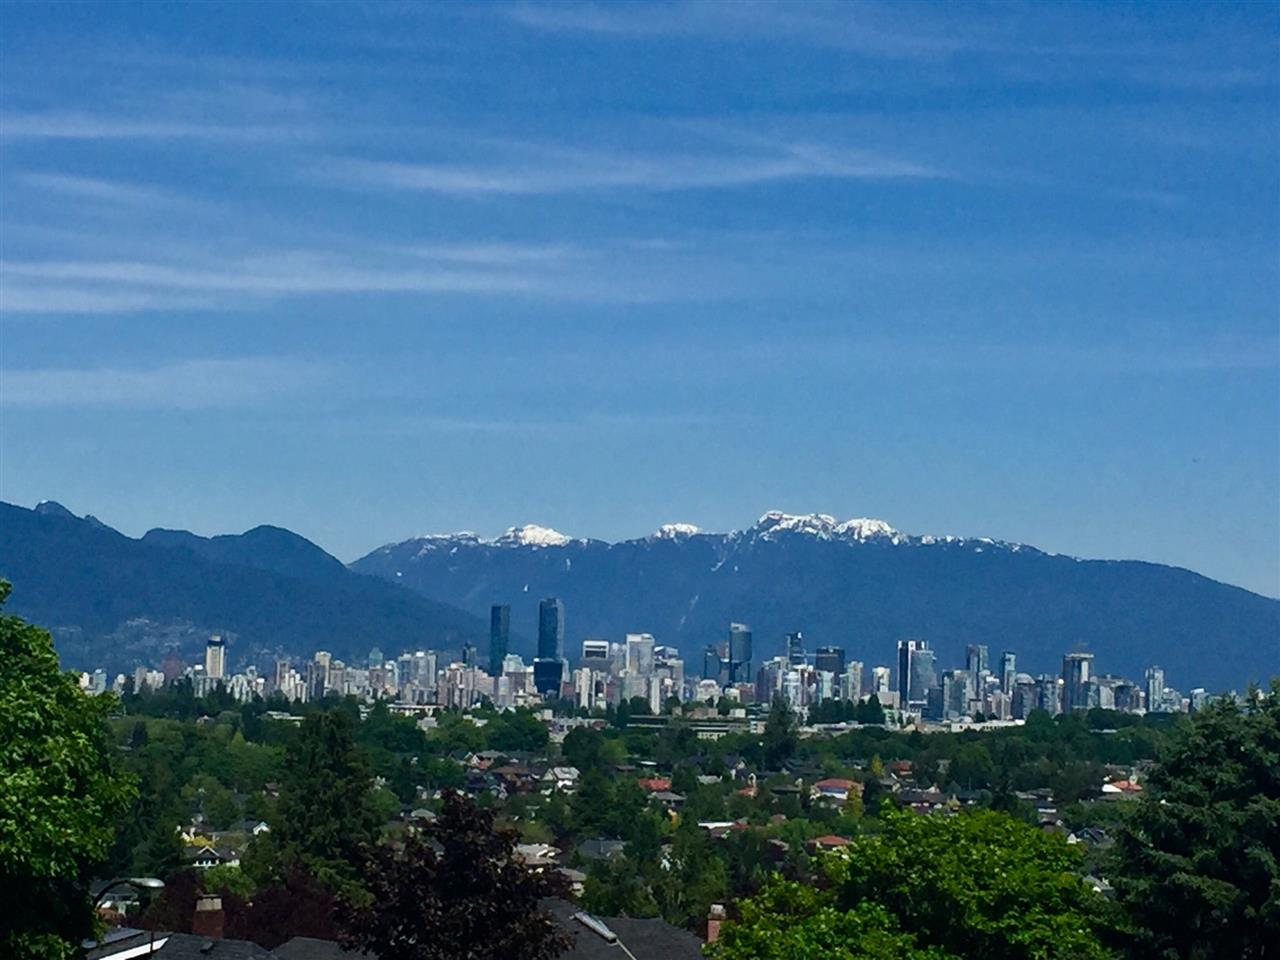 "Main Photo: 3038 W KING EDWARD Avenue in Vancouver: MacKenzie Heights House for sale in ""Mackenzie Hts"" (Vancouver West)  : MLS® # R2170394"